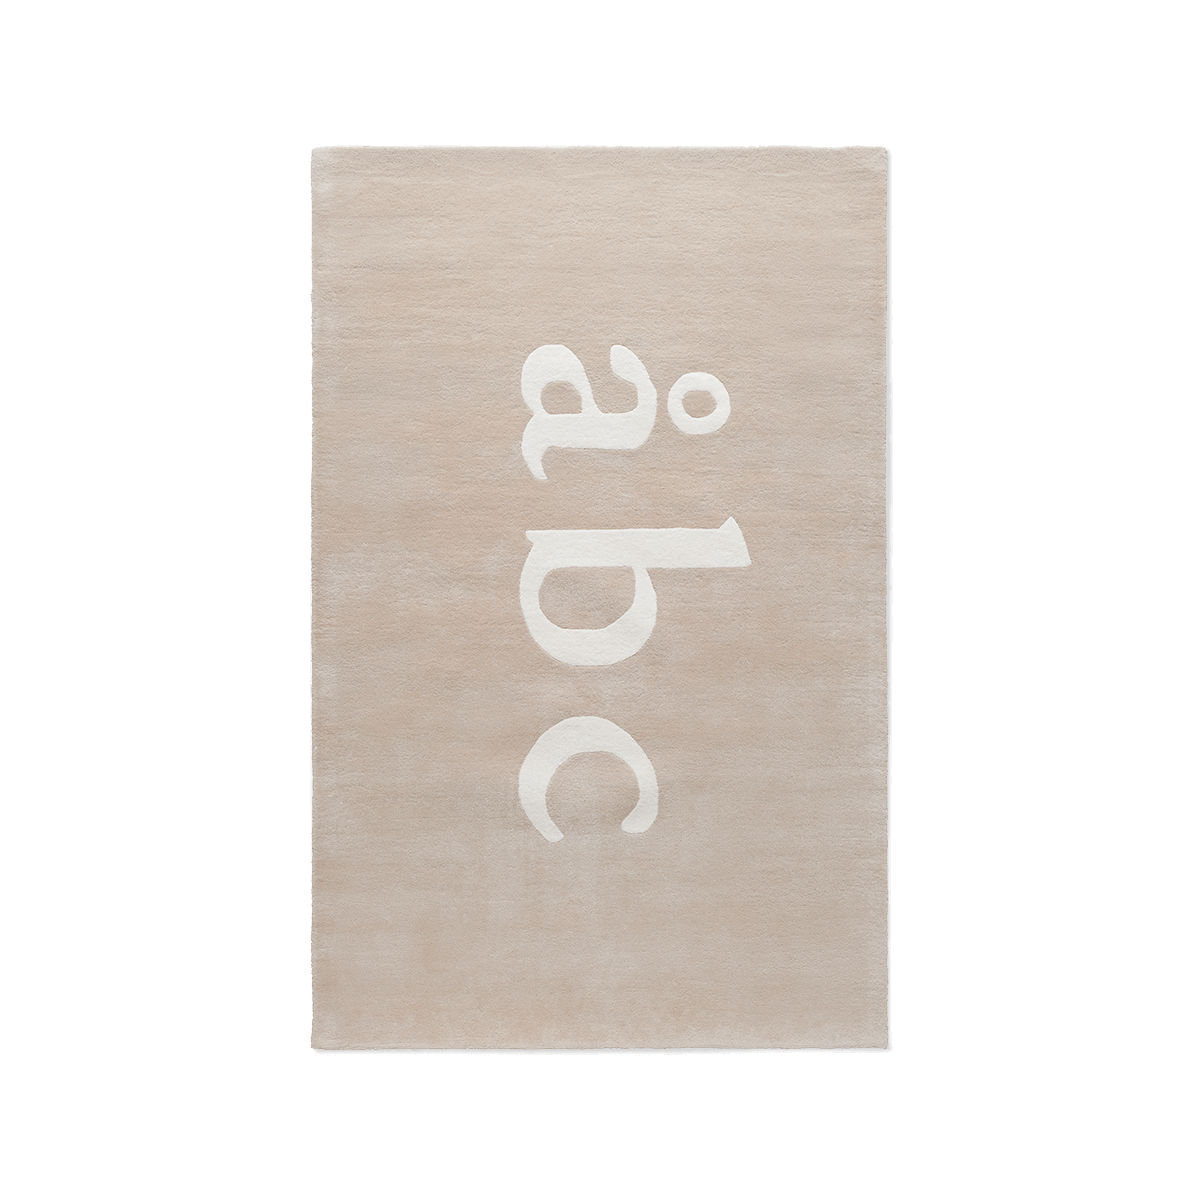 Product image of plush rug Åbc in color sand.